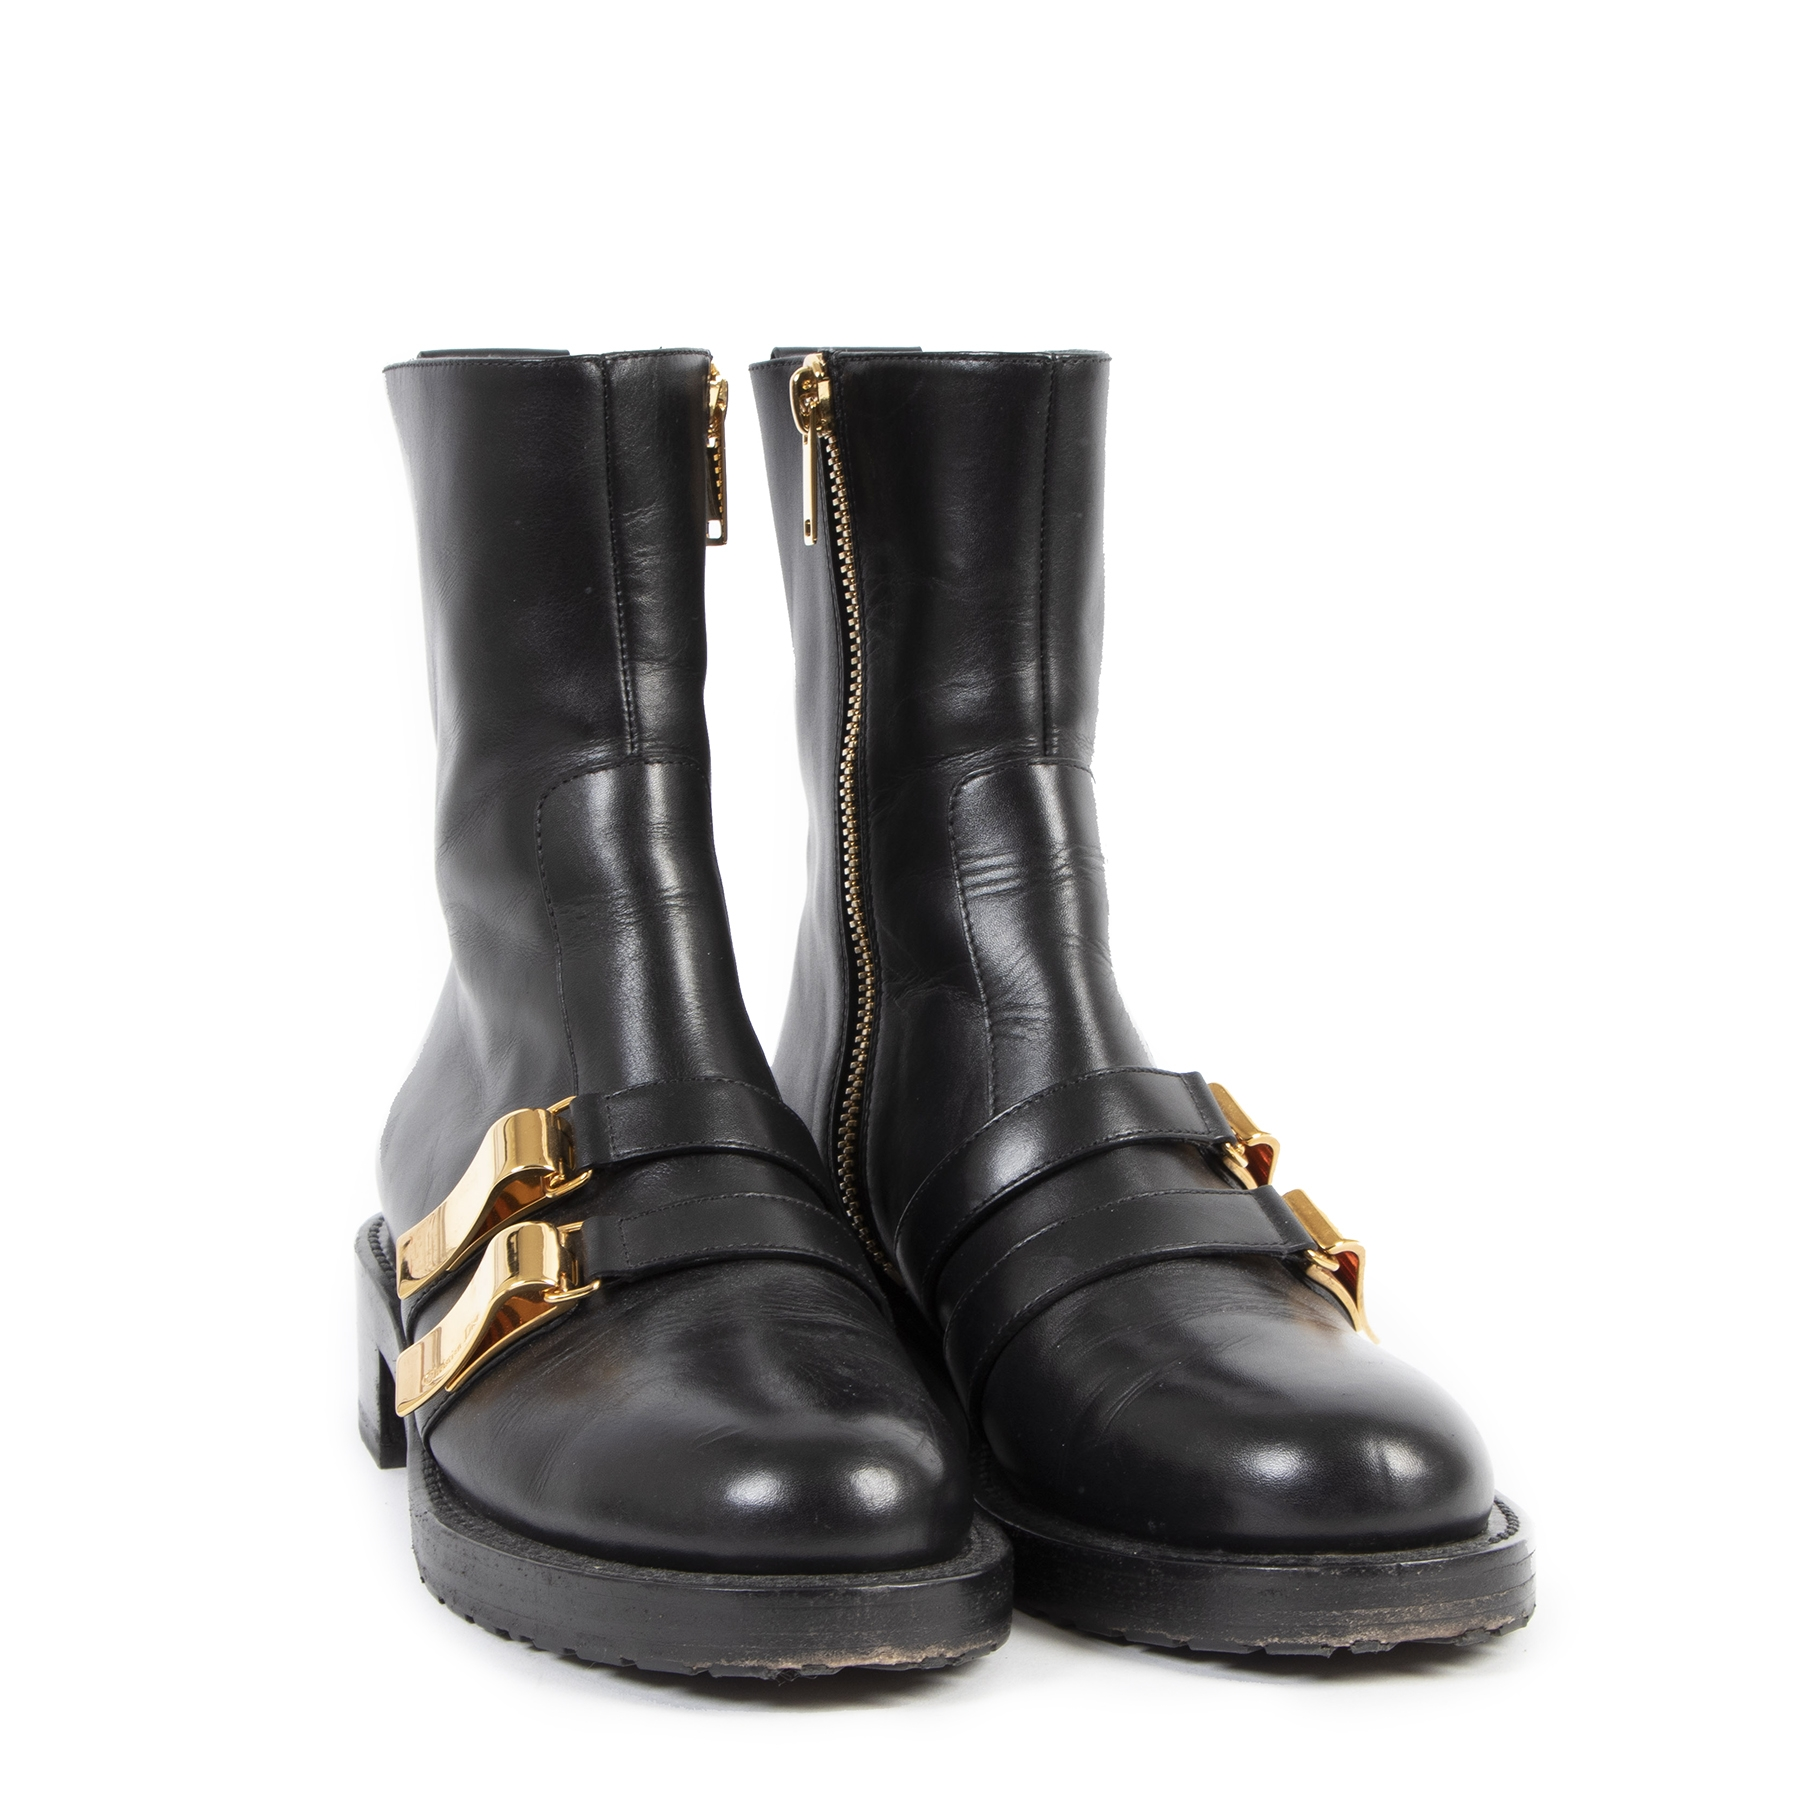 Authentieke Tweedehands Christian Dior Black Calfskin Leather Buckle Ankle Boots - Size 39,5 juiste prijs veilig online shoppen luxe merken webshop winkelen Antwerpen België mode fashion